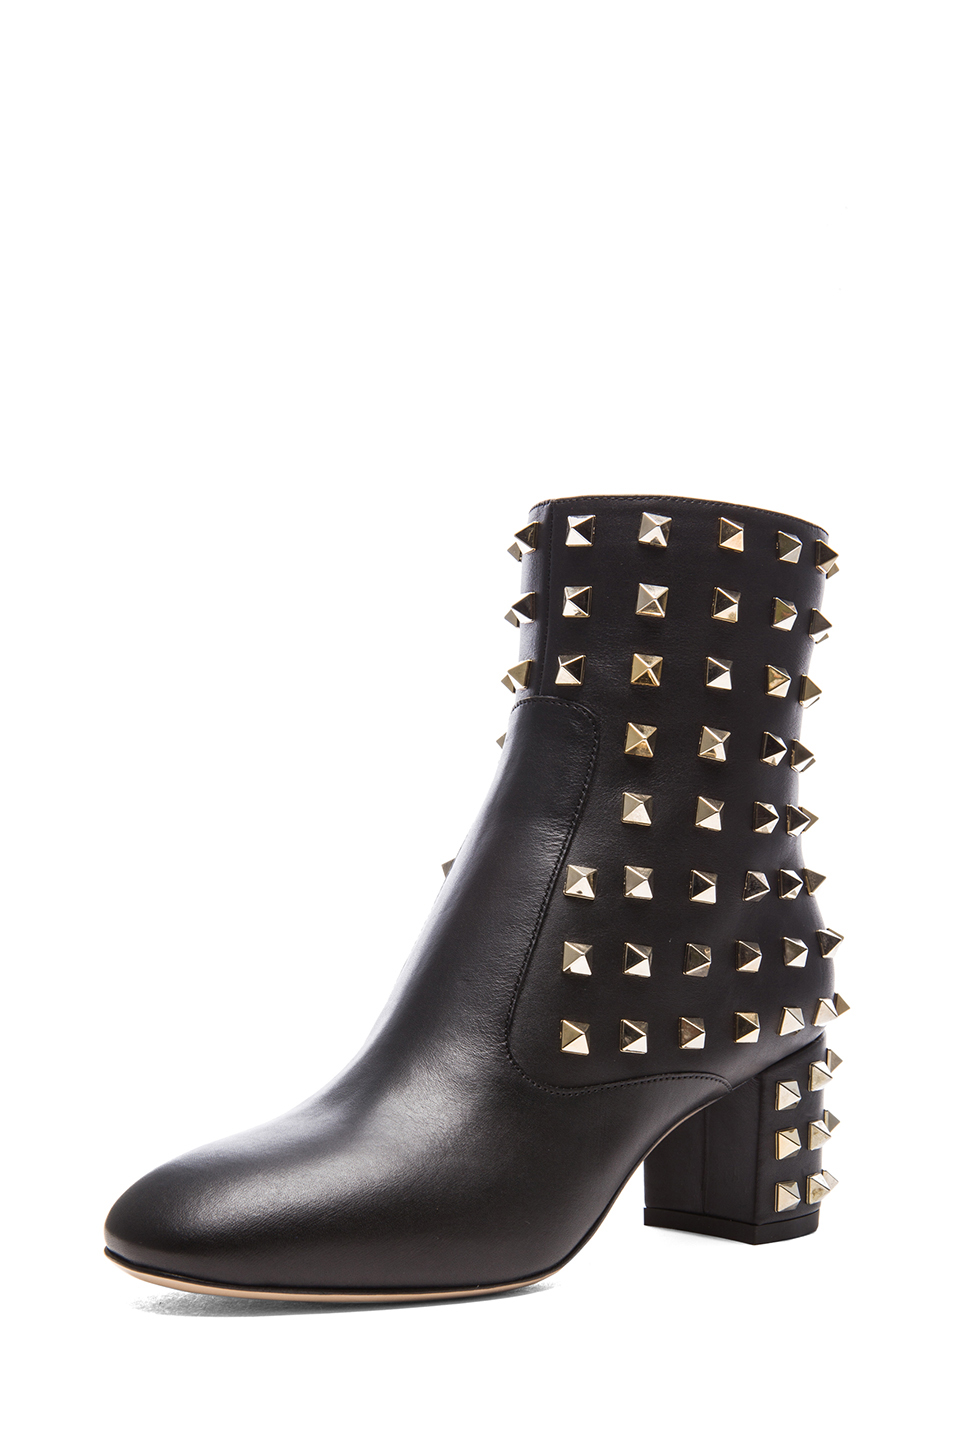 Valentino|Rockstud Leather Boots T.55 in Black